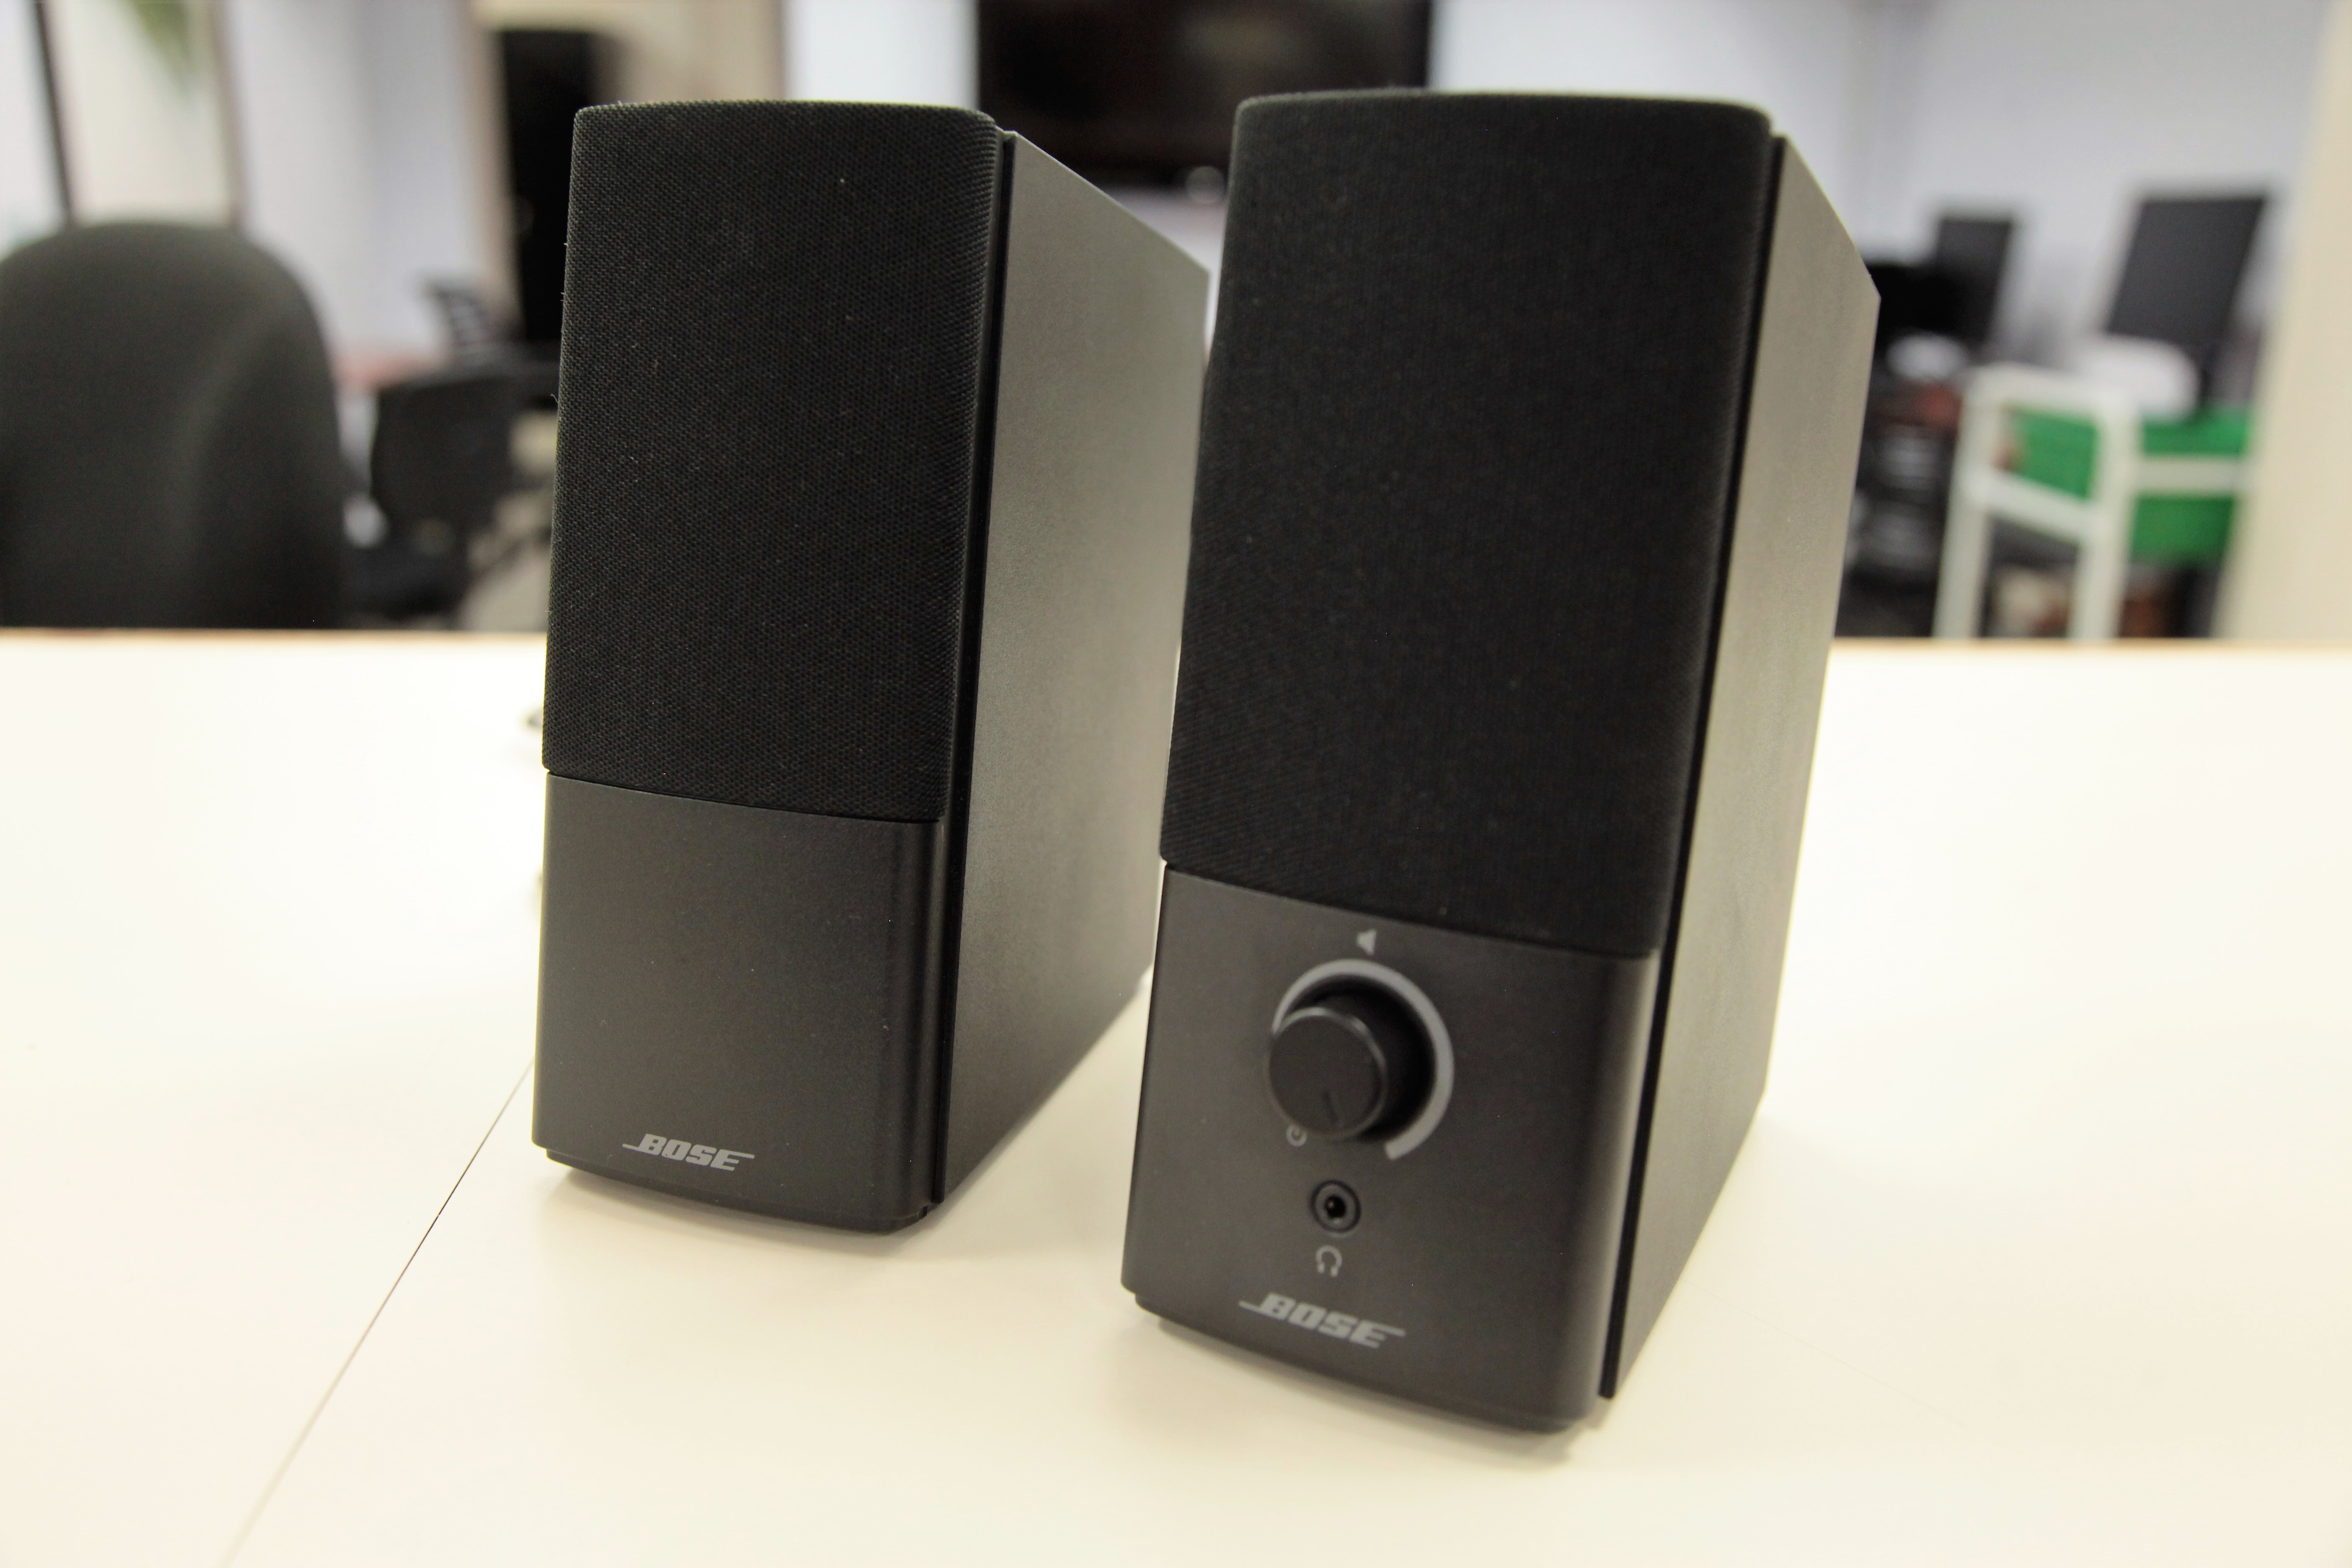 A set of computer speakers on a counter